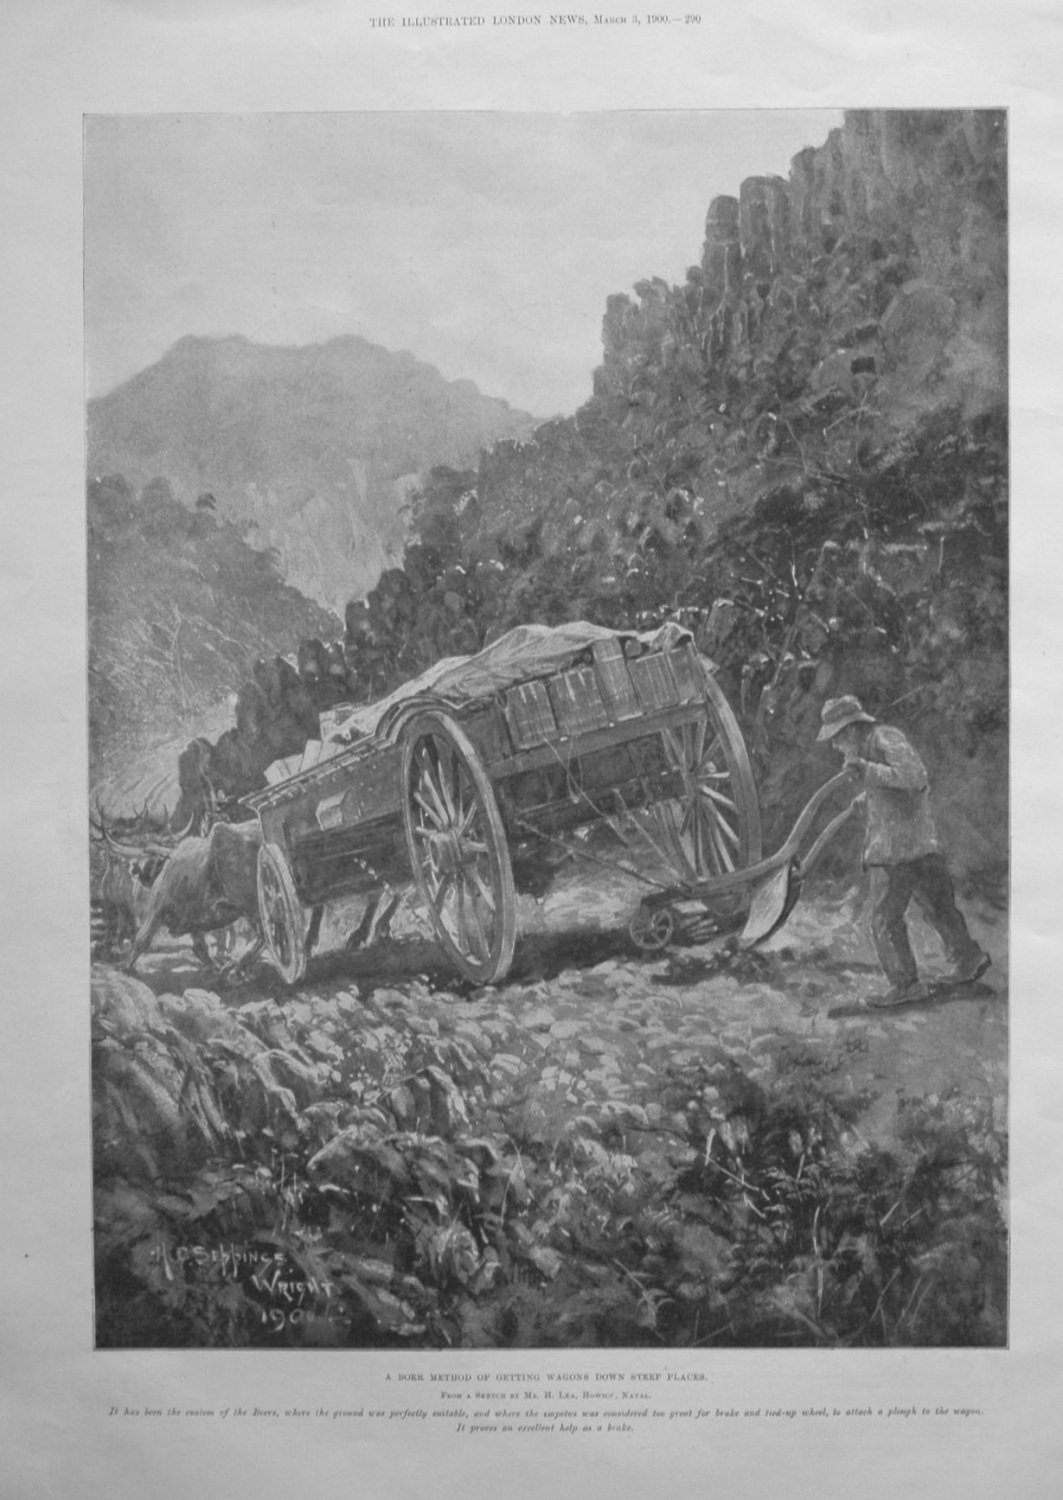 A Boer Method of getting Wagons down Steep Places. 1900